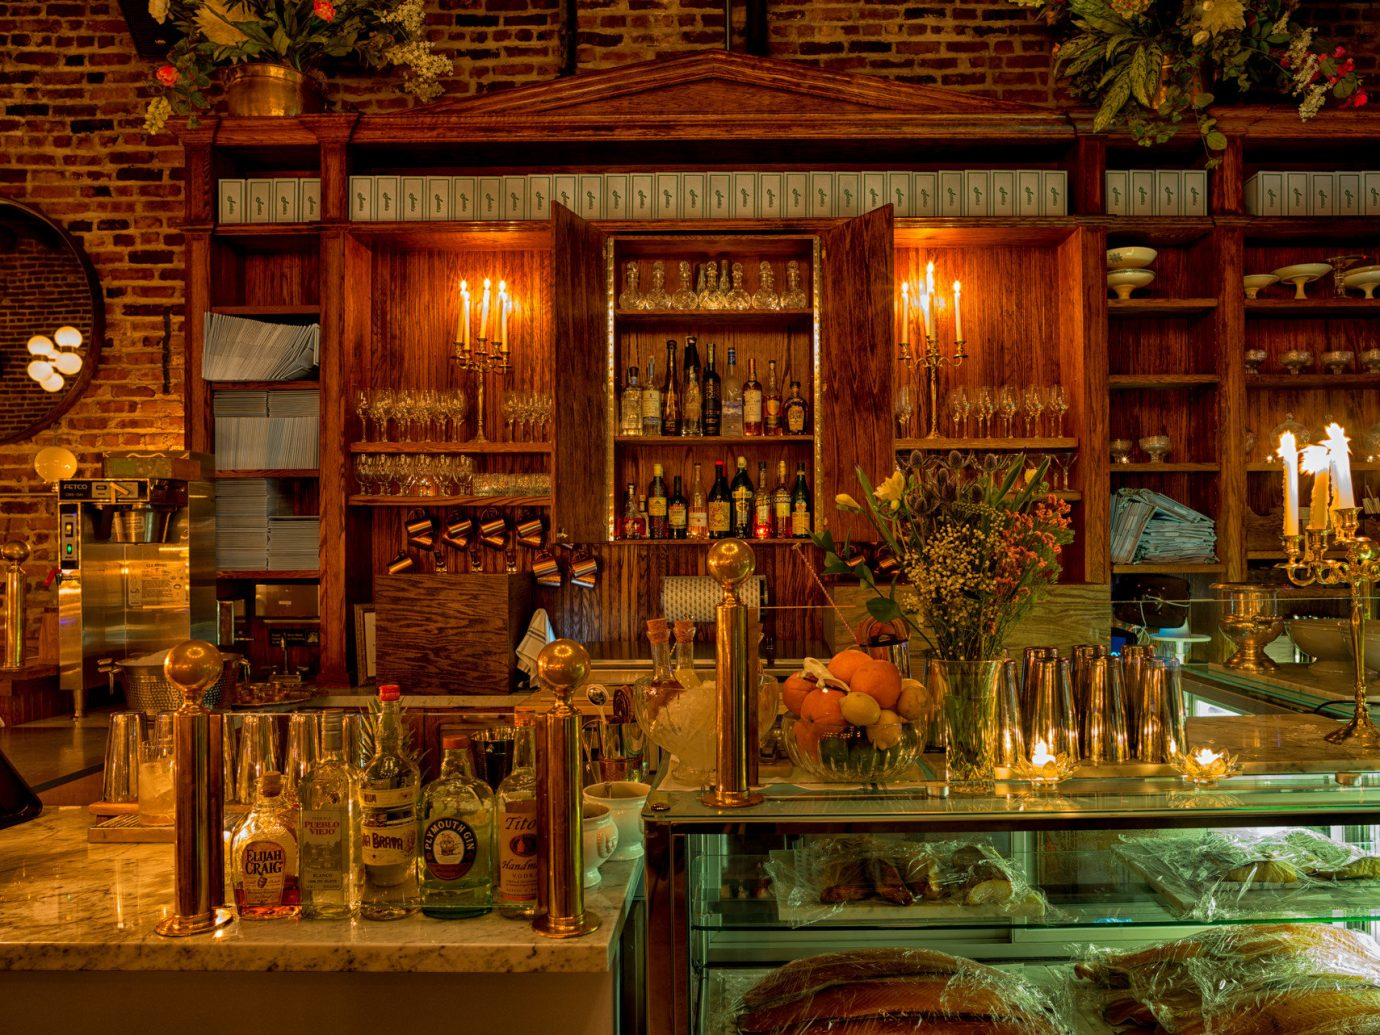 ambient lighting artistic artsy charming chic cozy Dining Hip industrial interior Luxury restaurant sophisticated trendy Trip Ideas building estate Bar store